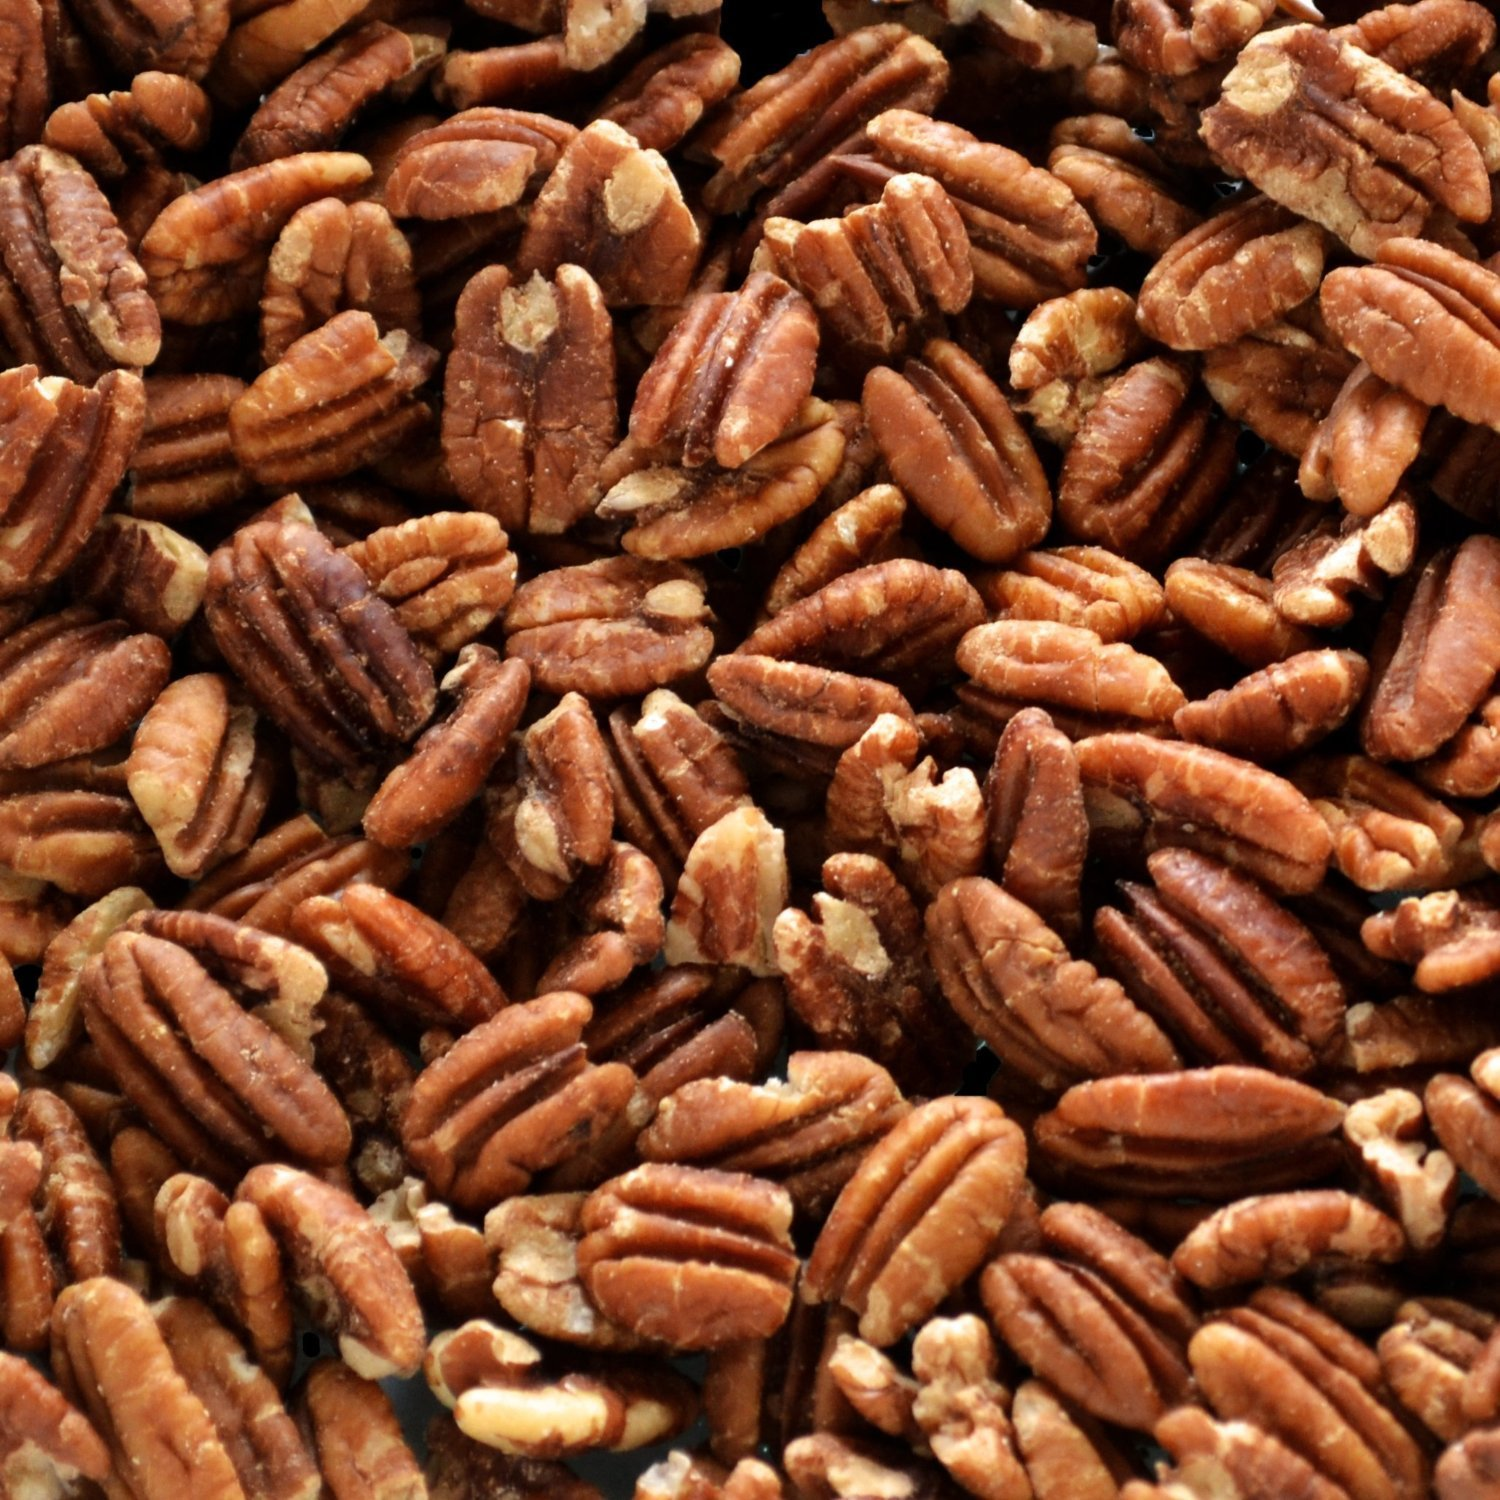 Native Pecan Halves, Family Recipe Crispy, Soaked and Dried with Sea Salt, Bulk 20 Lb.